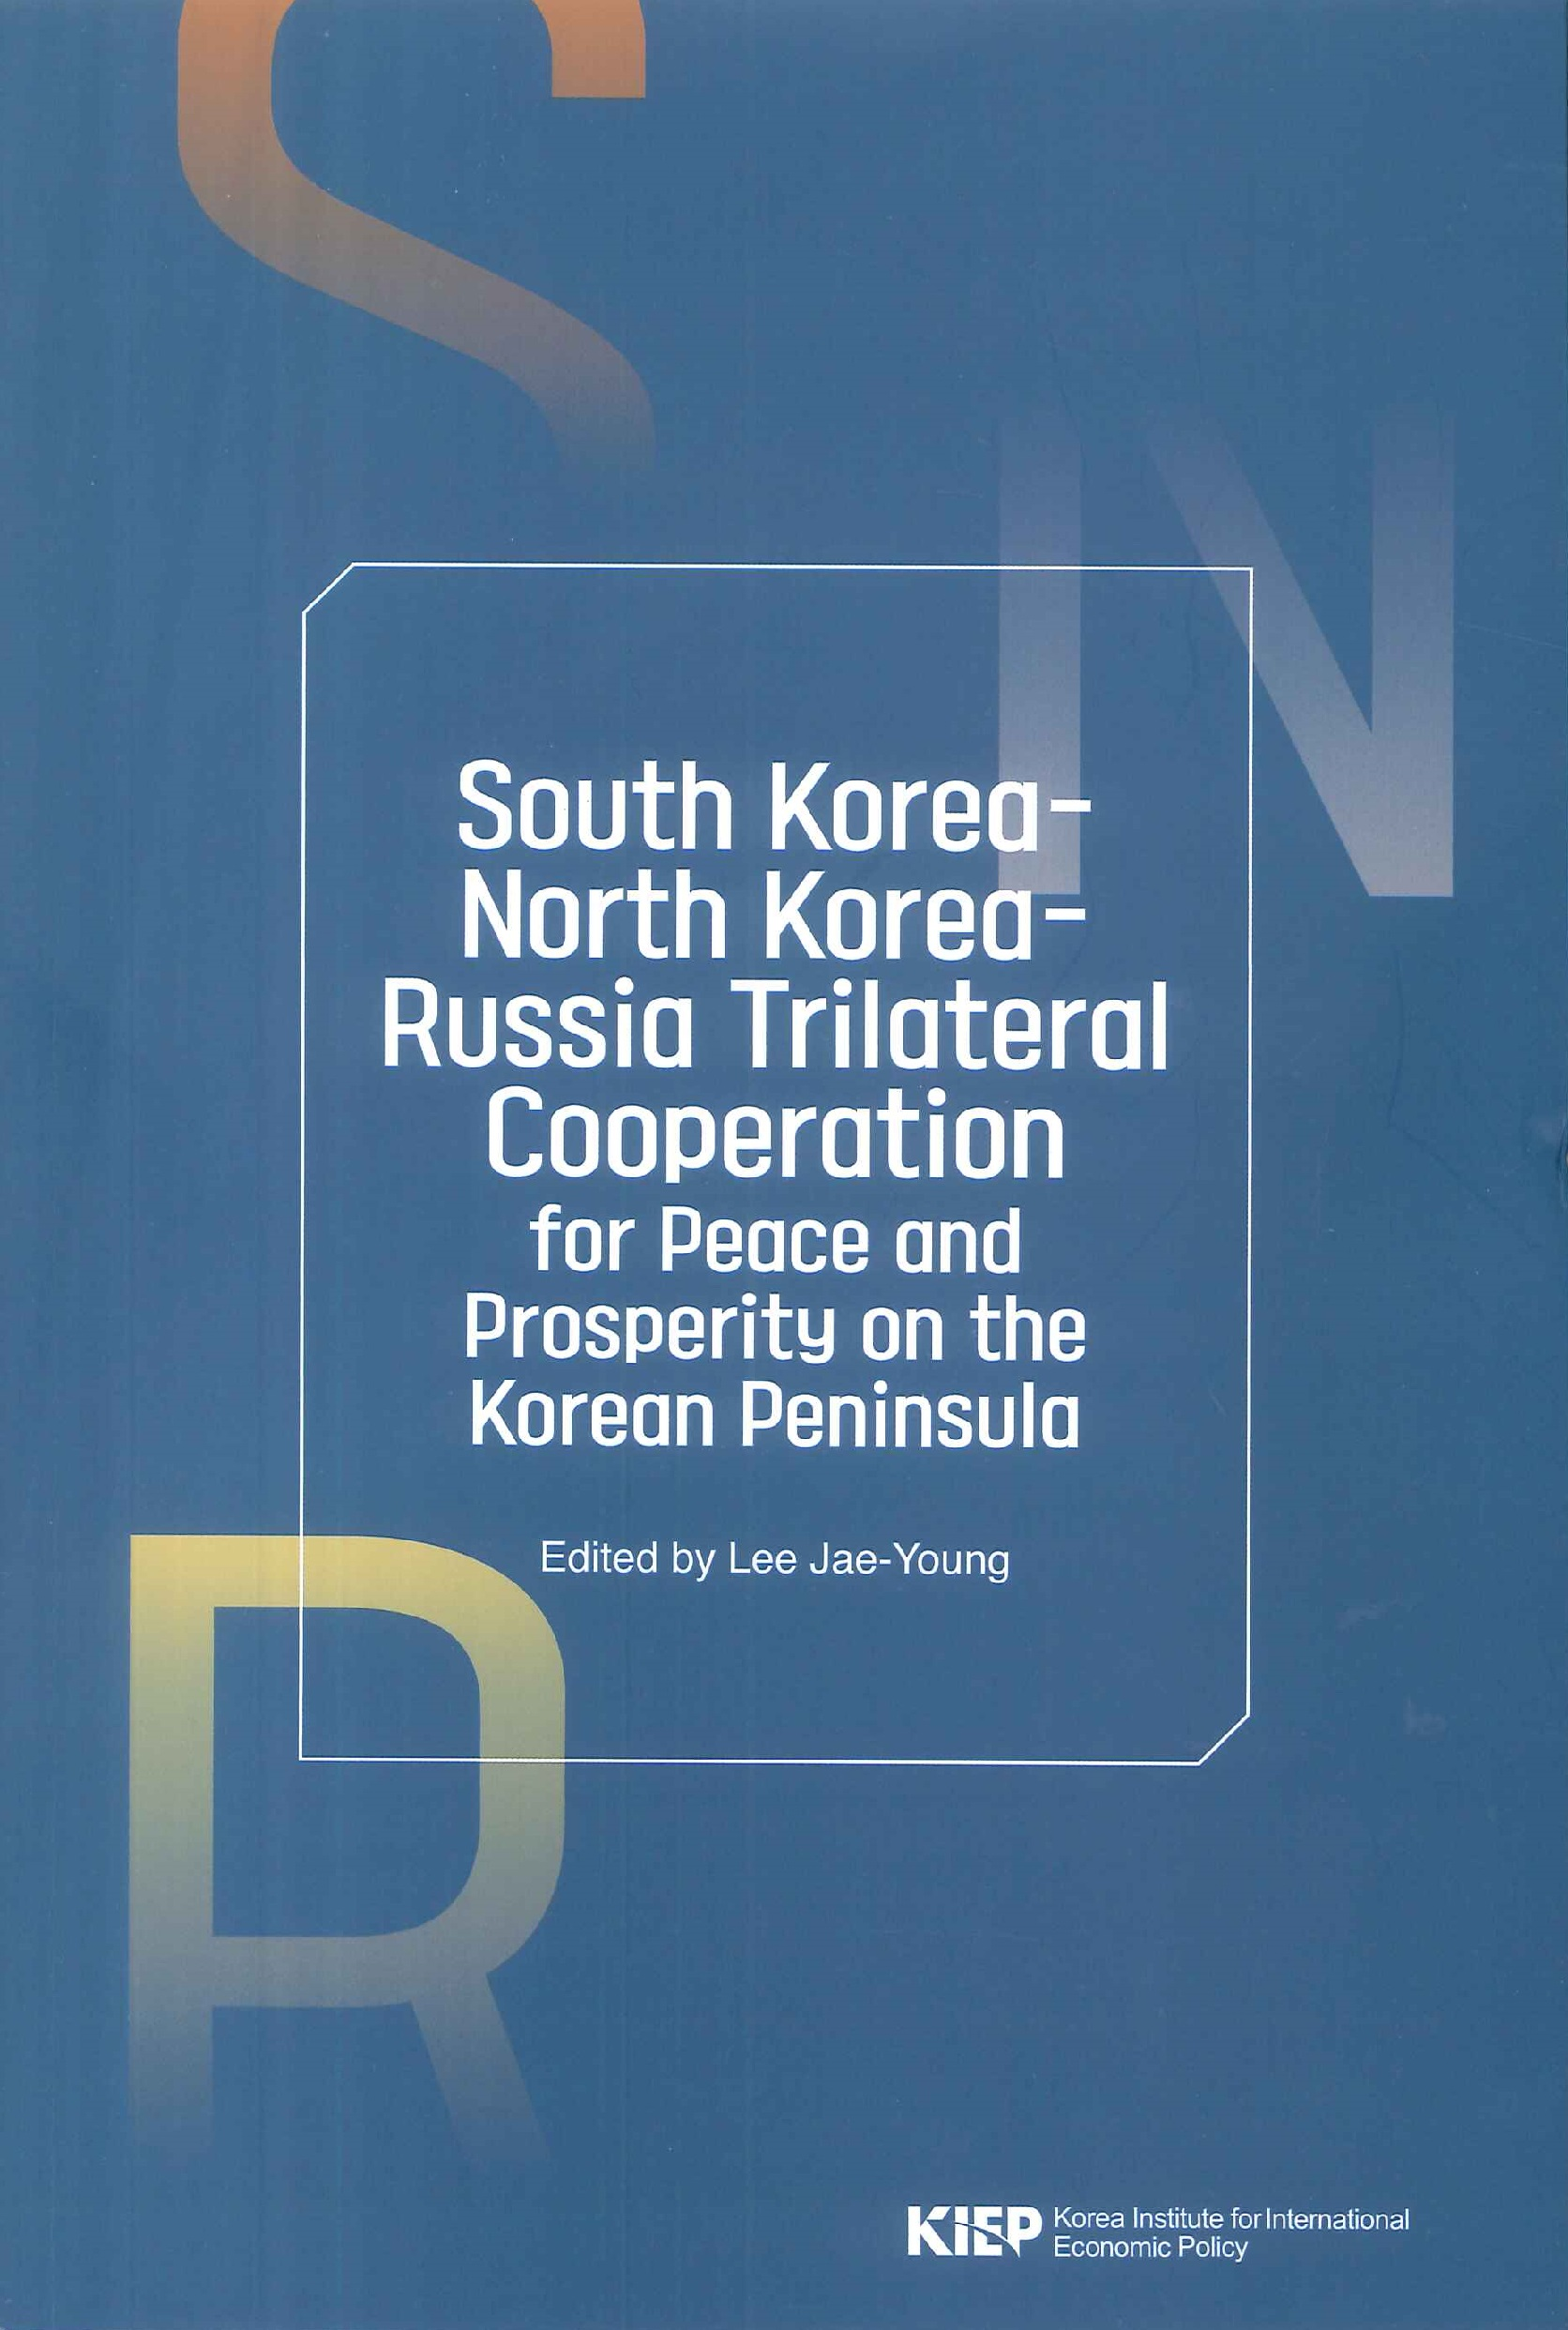 South Korea-North Korea-Russia trilateral cooperation:for peace and prosperity on the Korean Peninsula